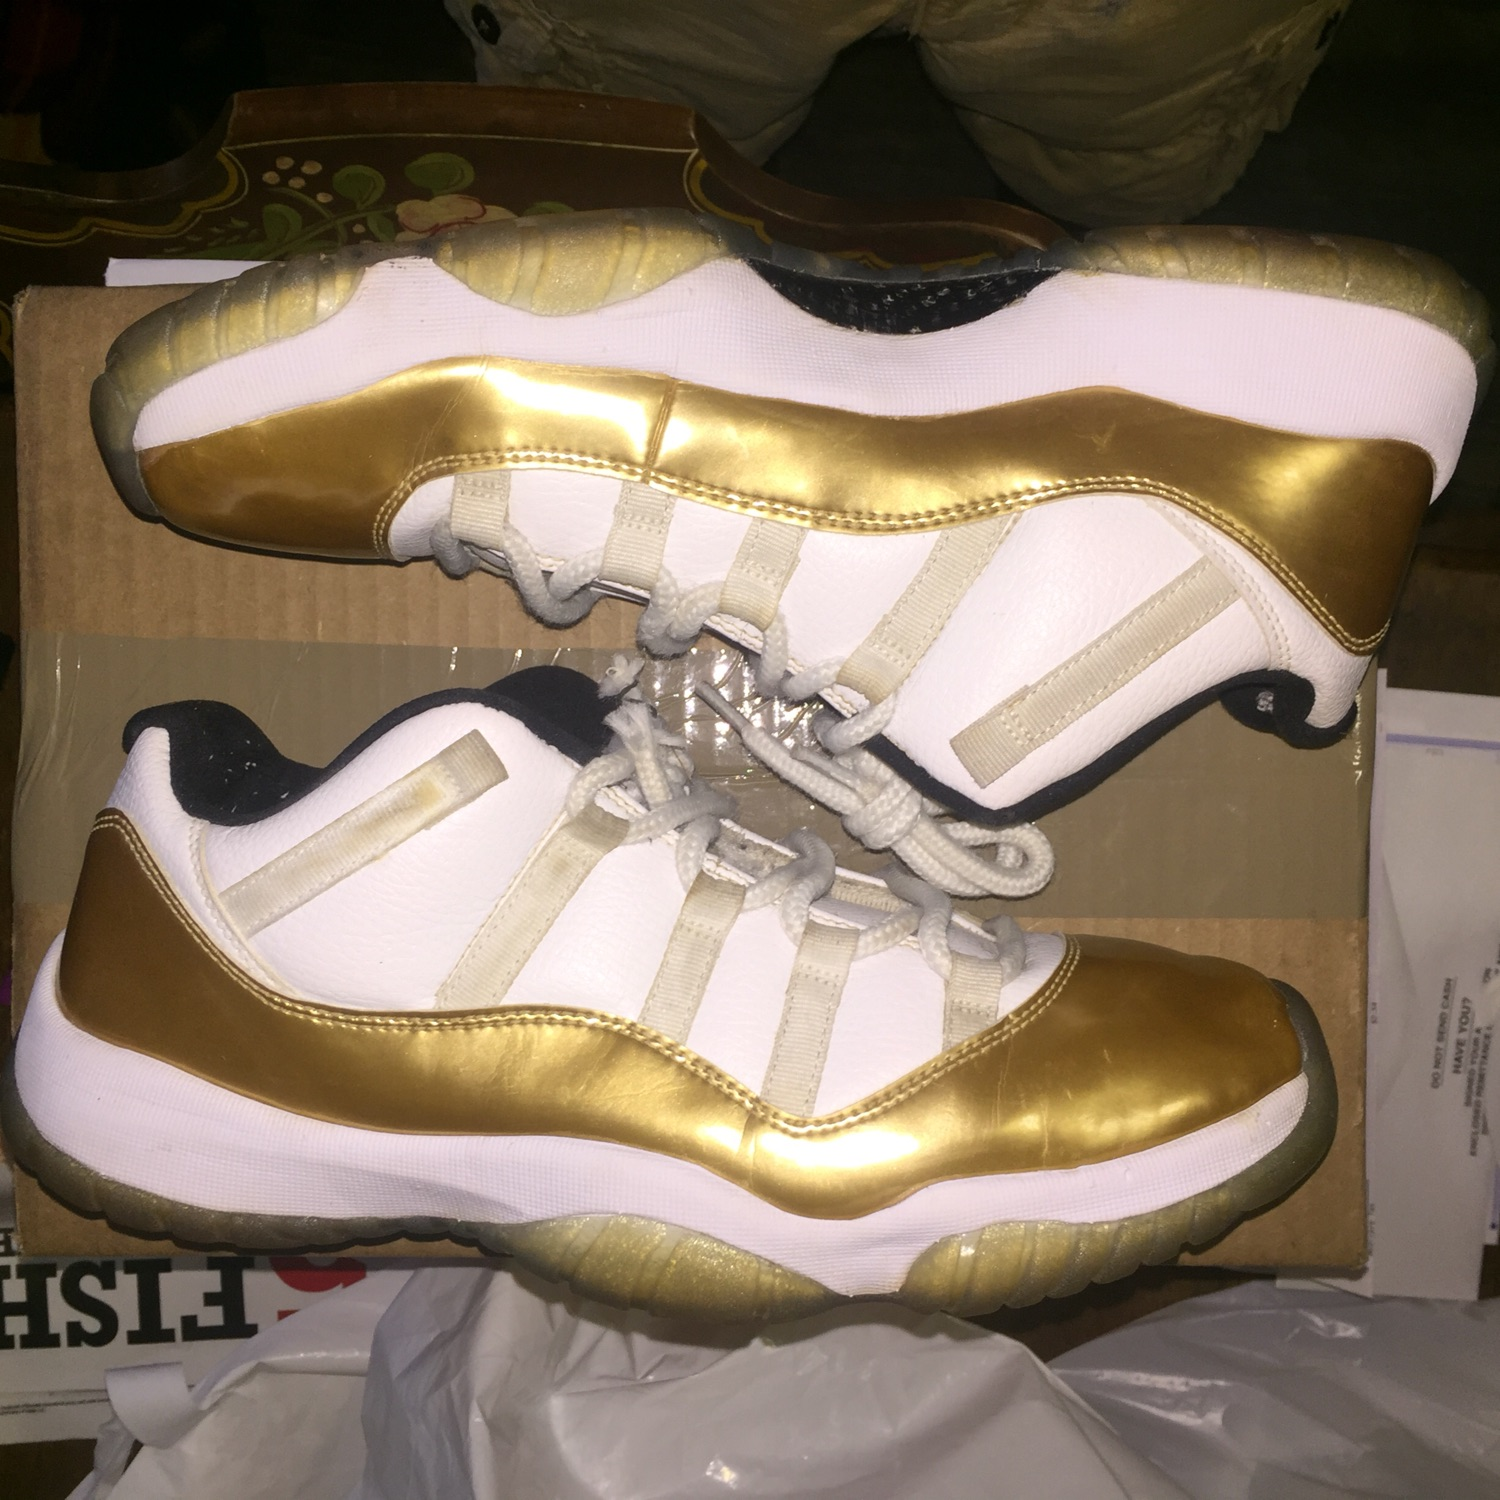 Jordan 11 Low Closing Ceremony And Ray Lewis